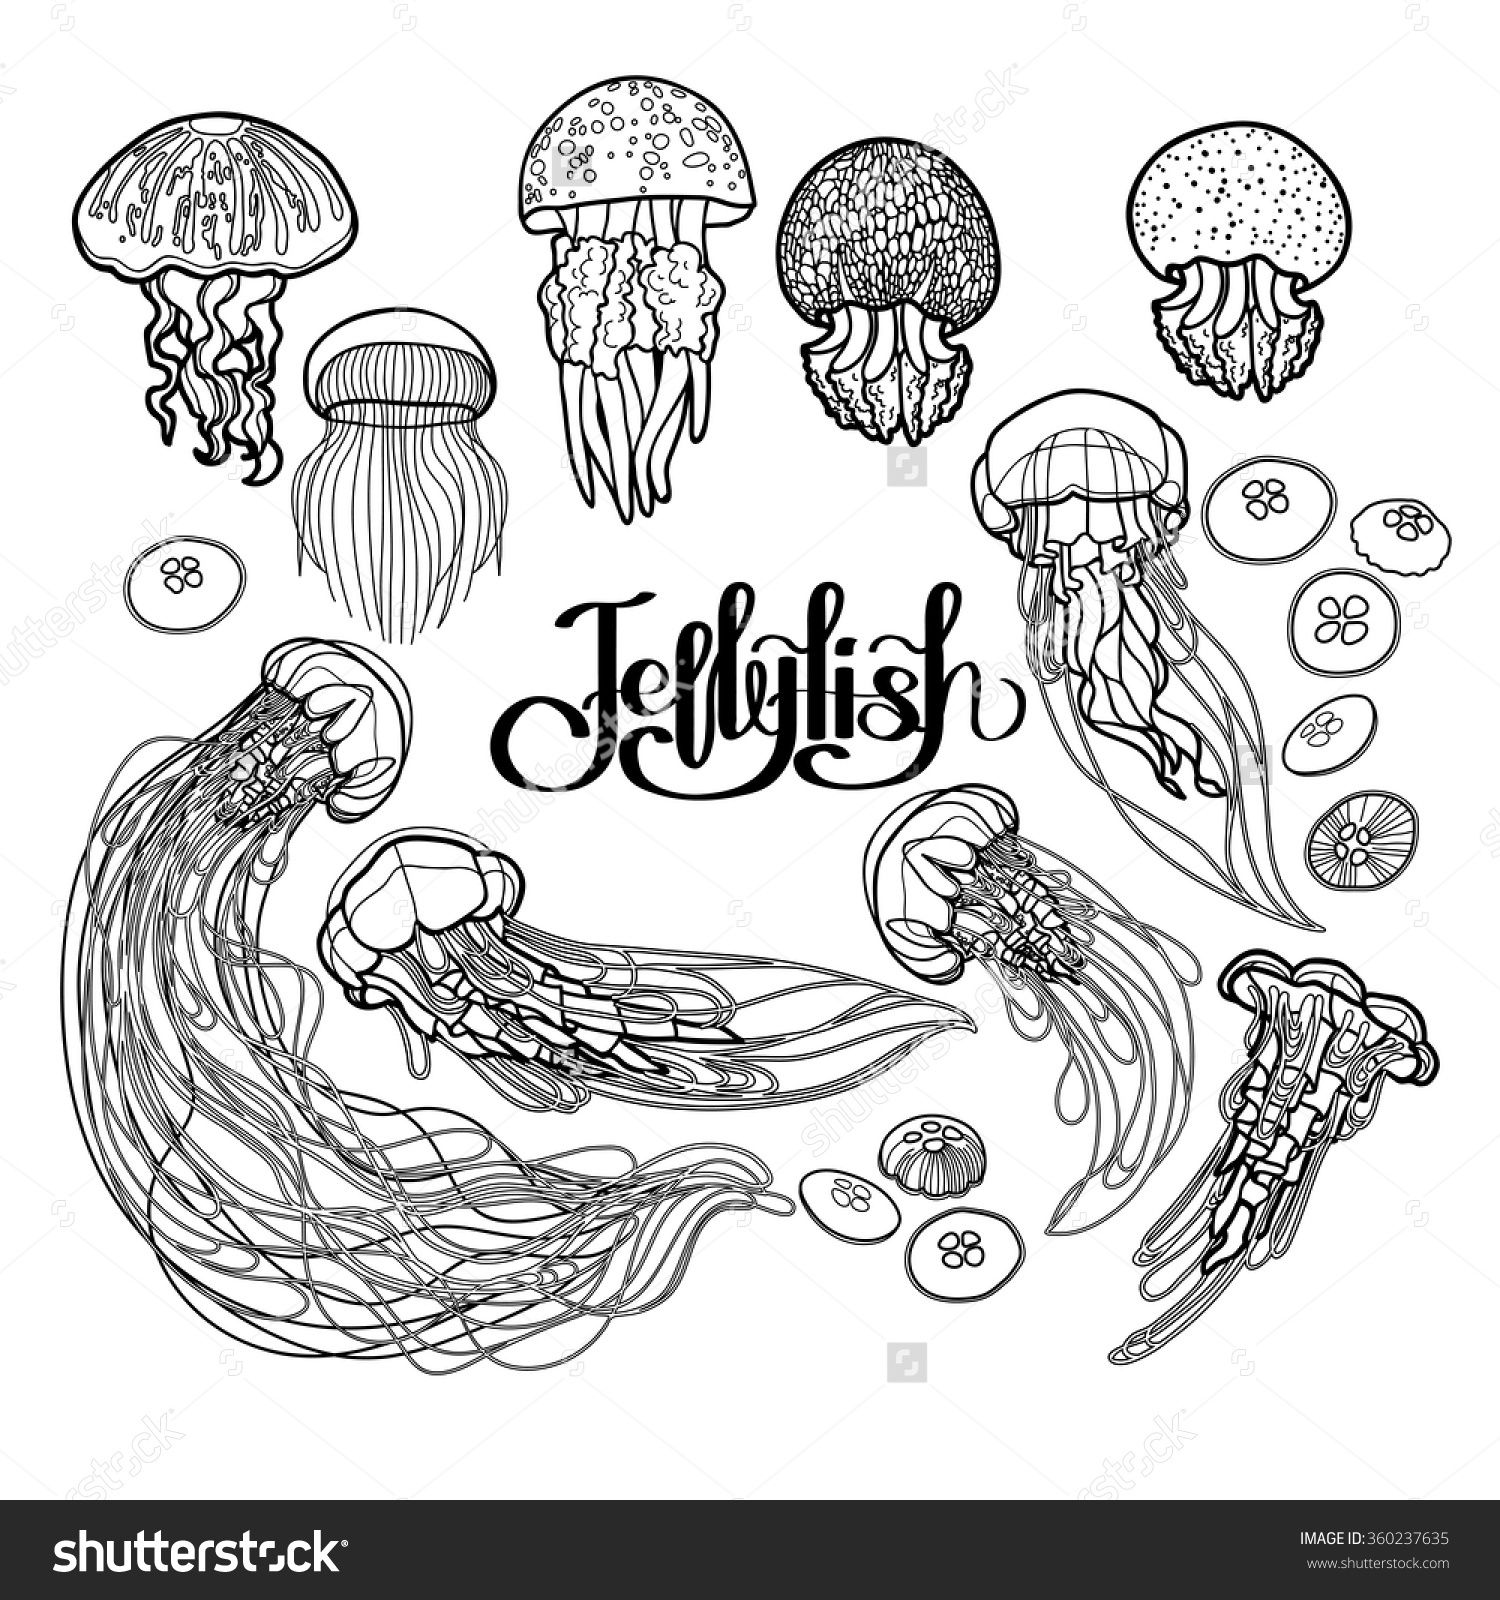 Jellyfish Animal Coloring Pages. Jellyfish drawn in line art style  Vector ocean animals black and white colors Coloring book page design for adults kids buy this stock vector on Drawn In Line Art Style Ocean Animals Black